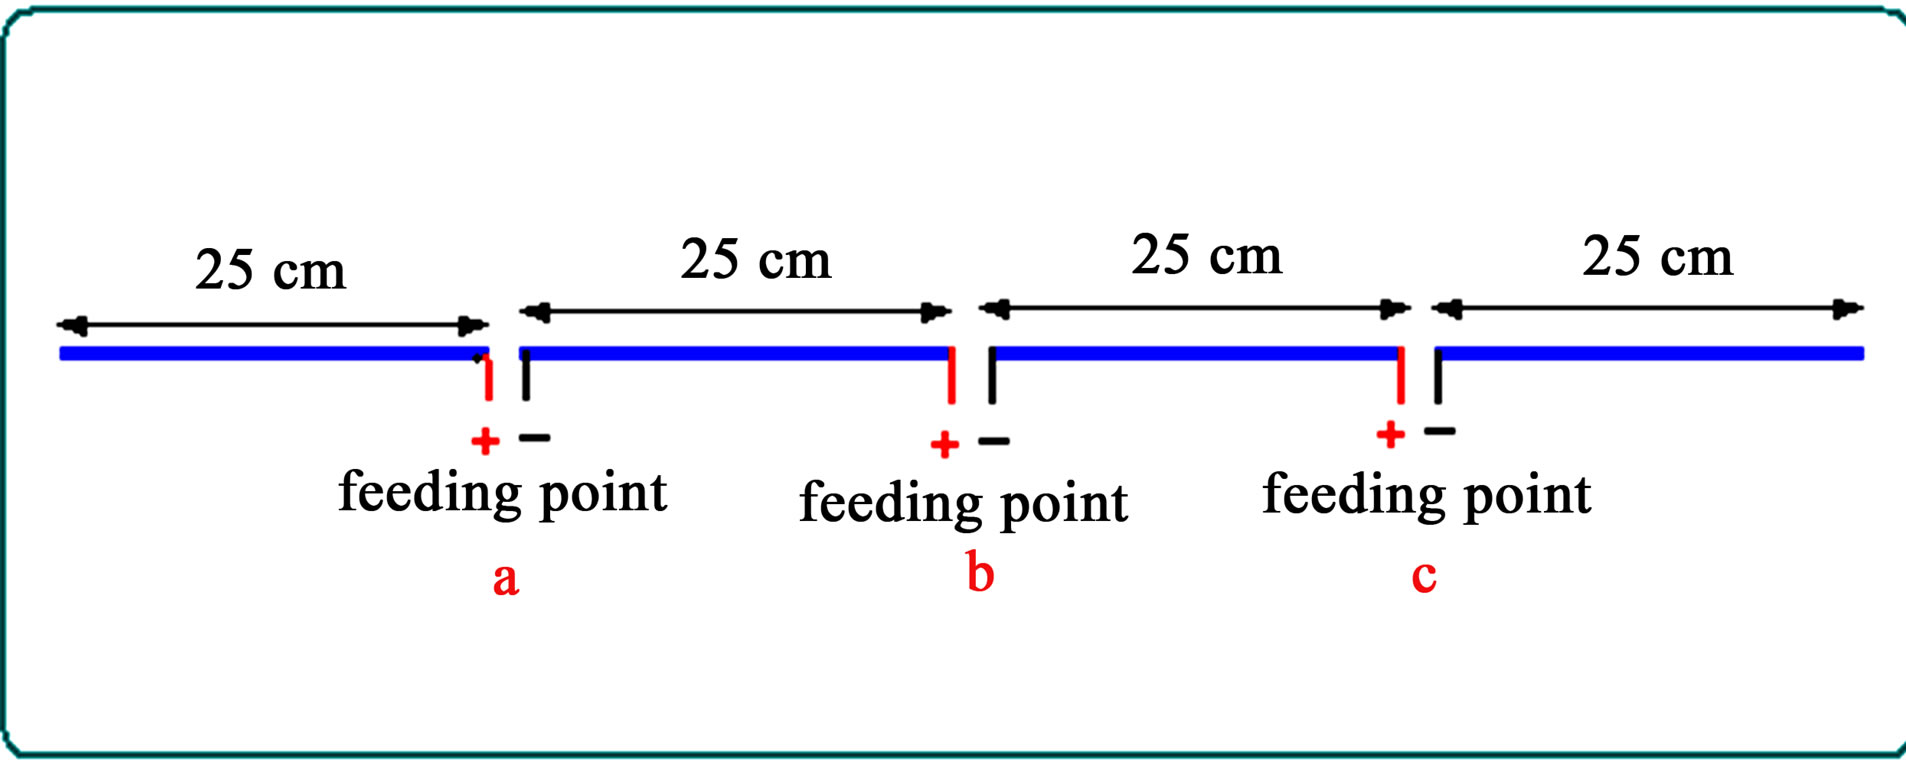 Analysis Of The Radiation Resistance And Gain Full Wave Dipole Single Phase Wiring Diagram Together With End Fed Wire Antenna Figure 10 Feeding Arrangements For Triple